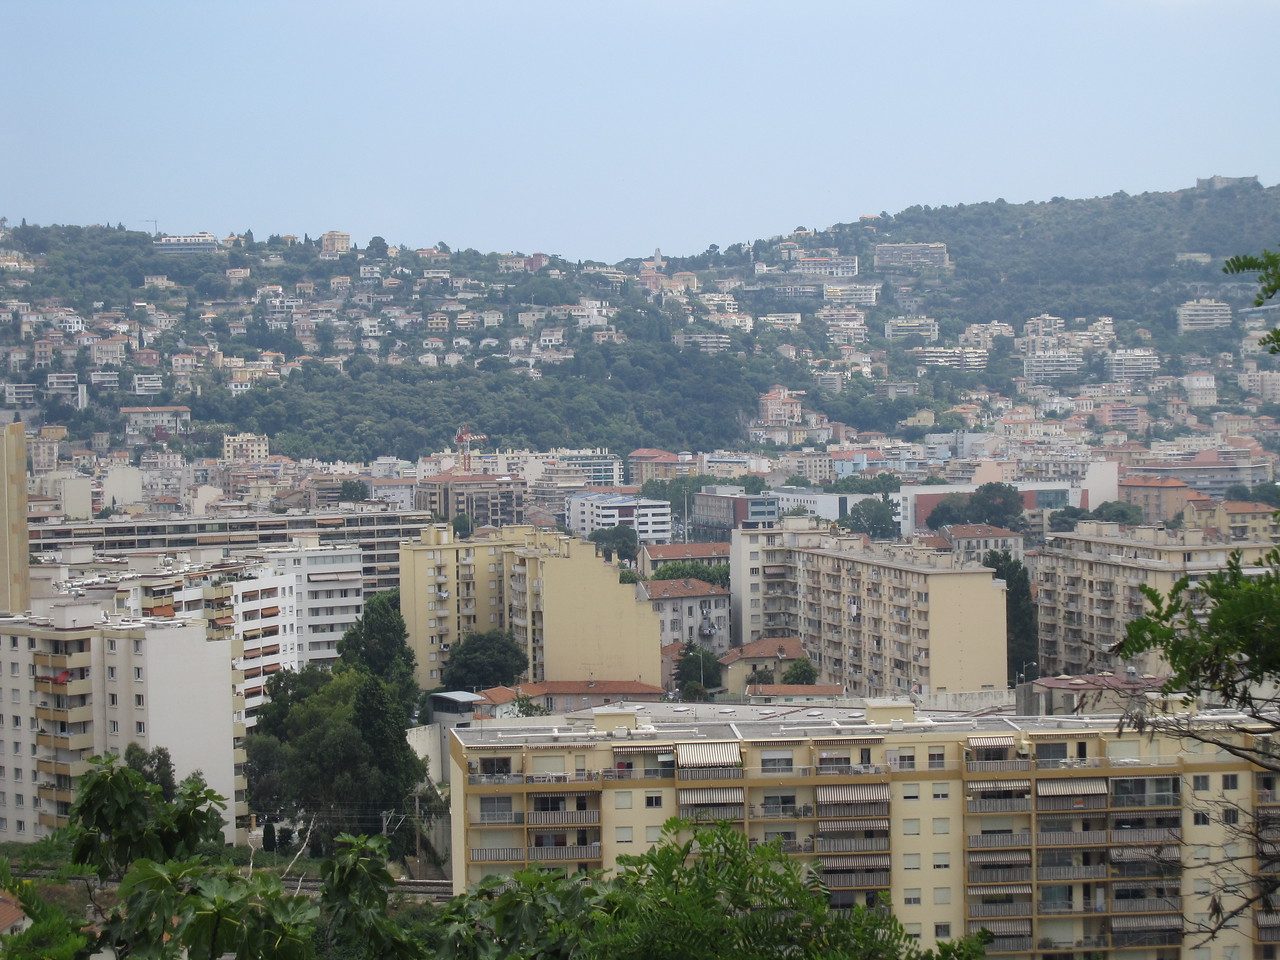 Overlooking view of the city skyline in Nice, France